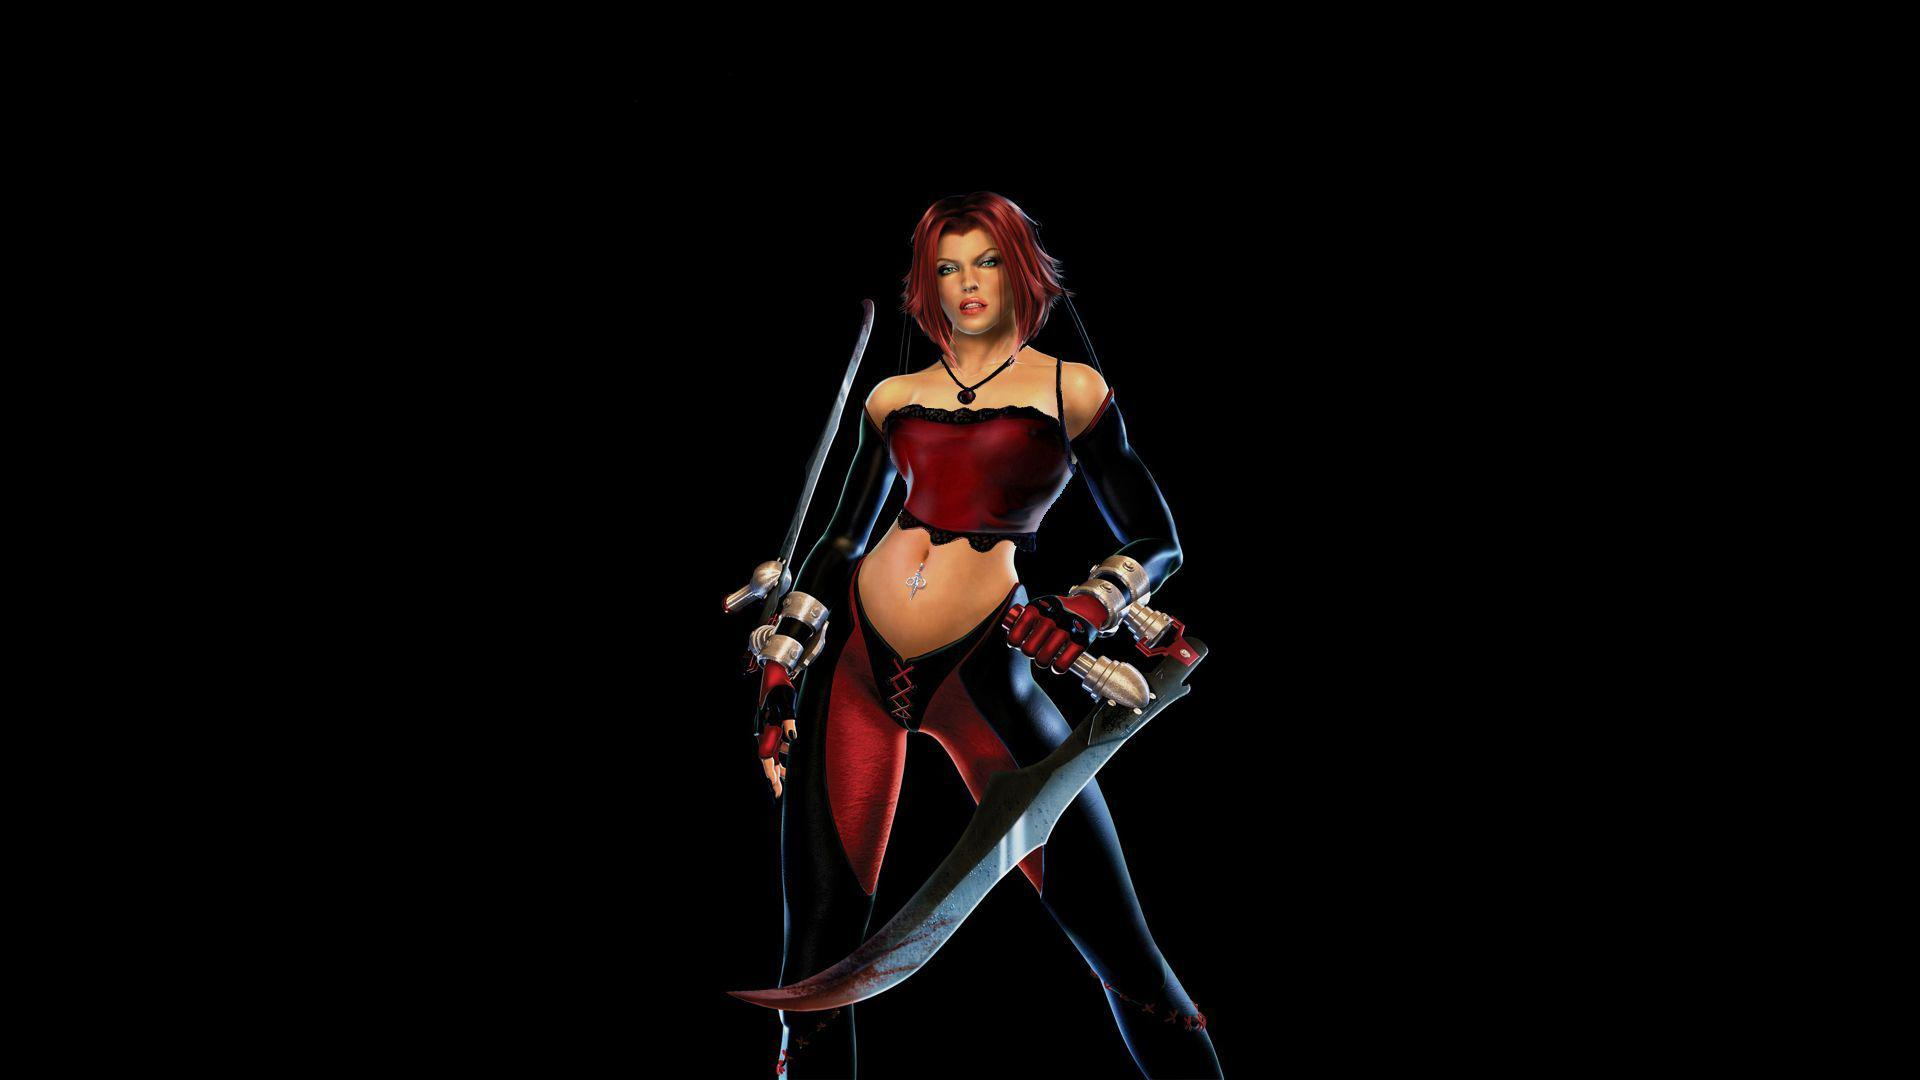 BloodRayne promotional art